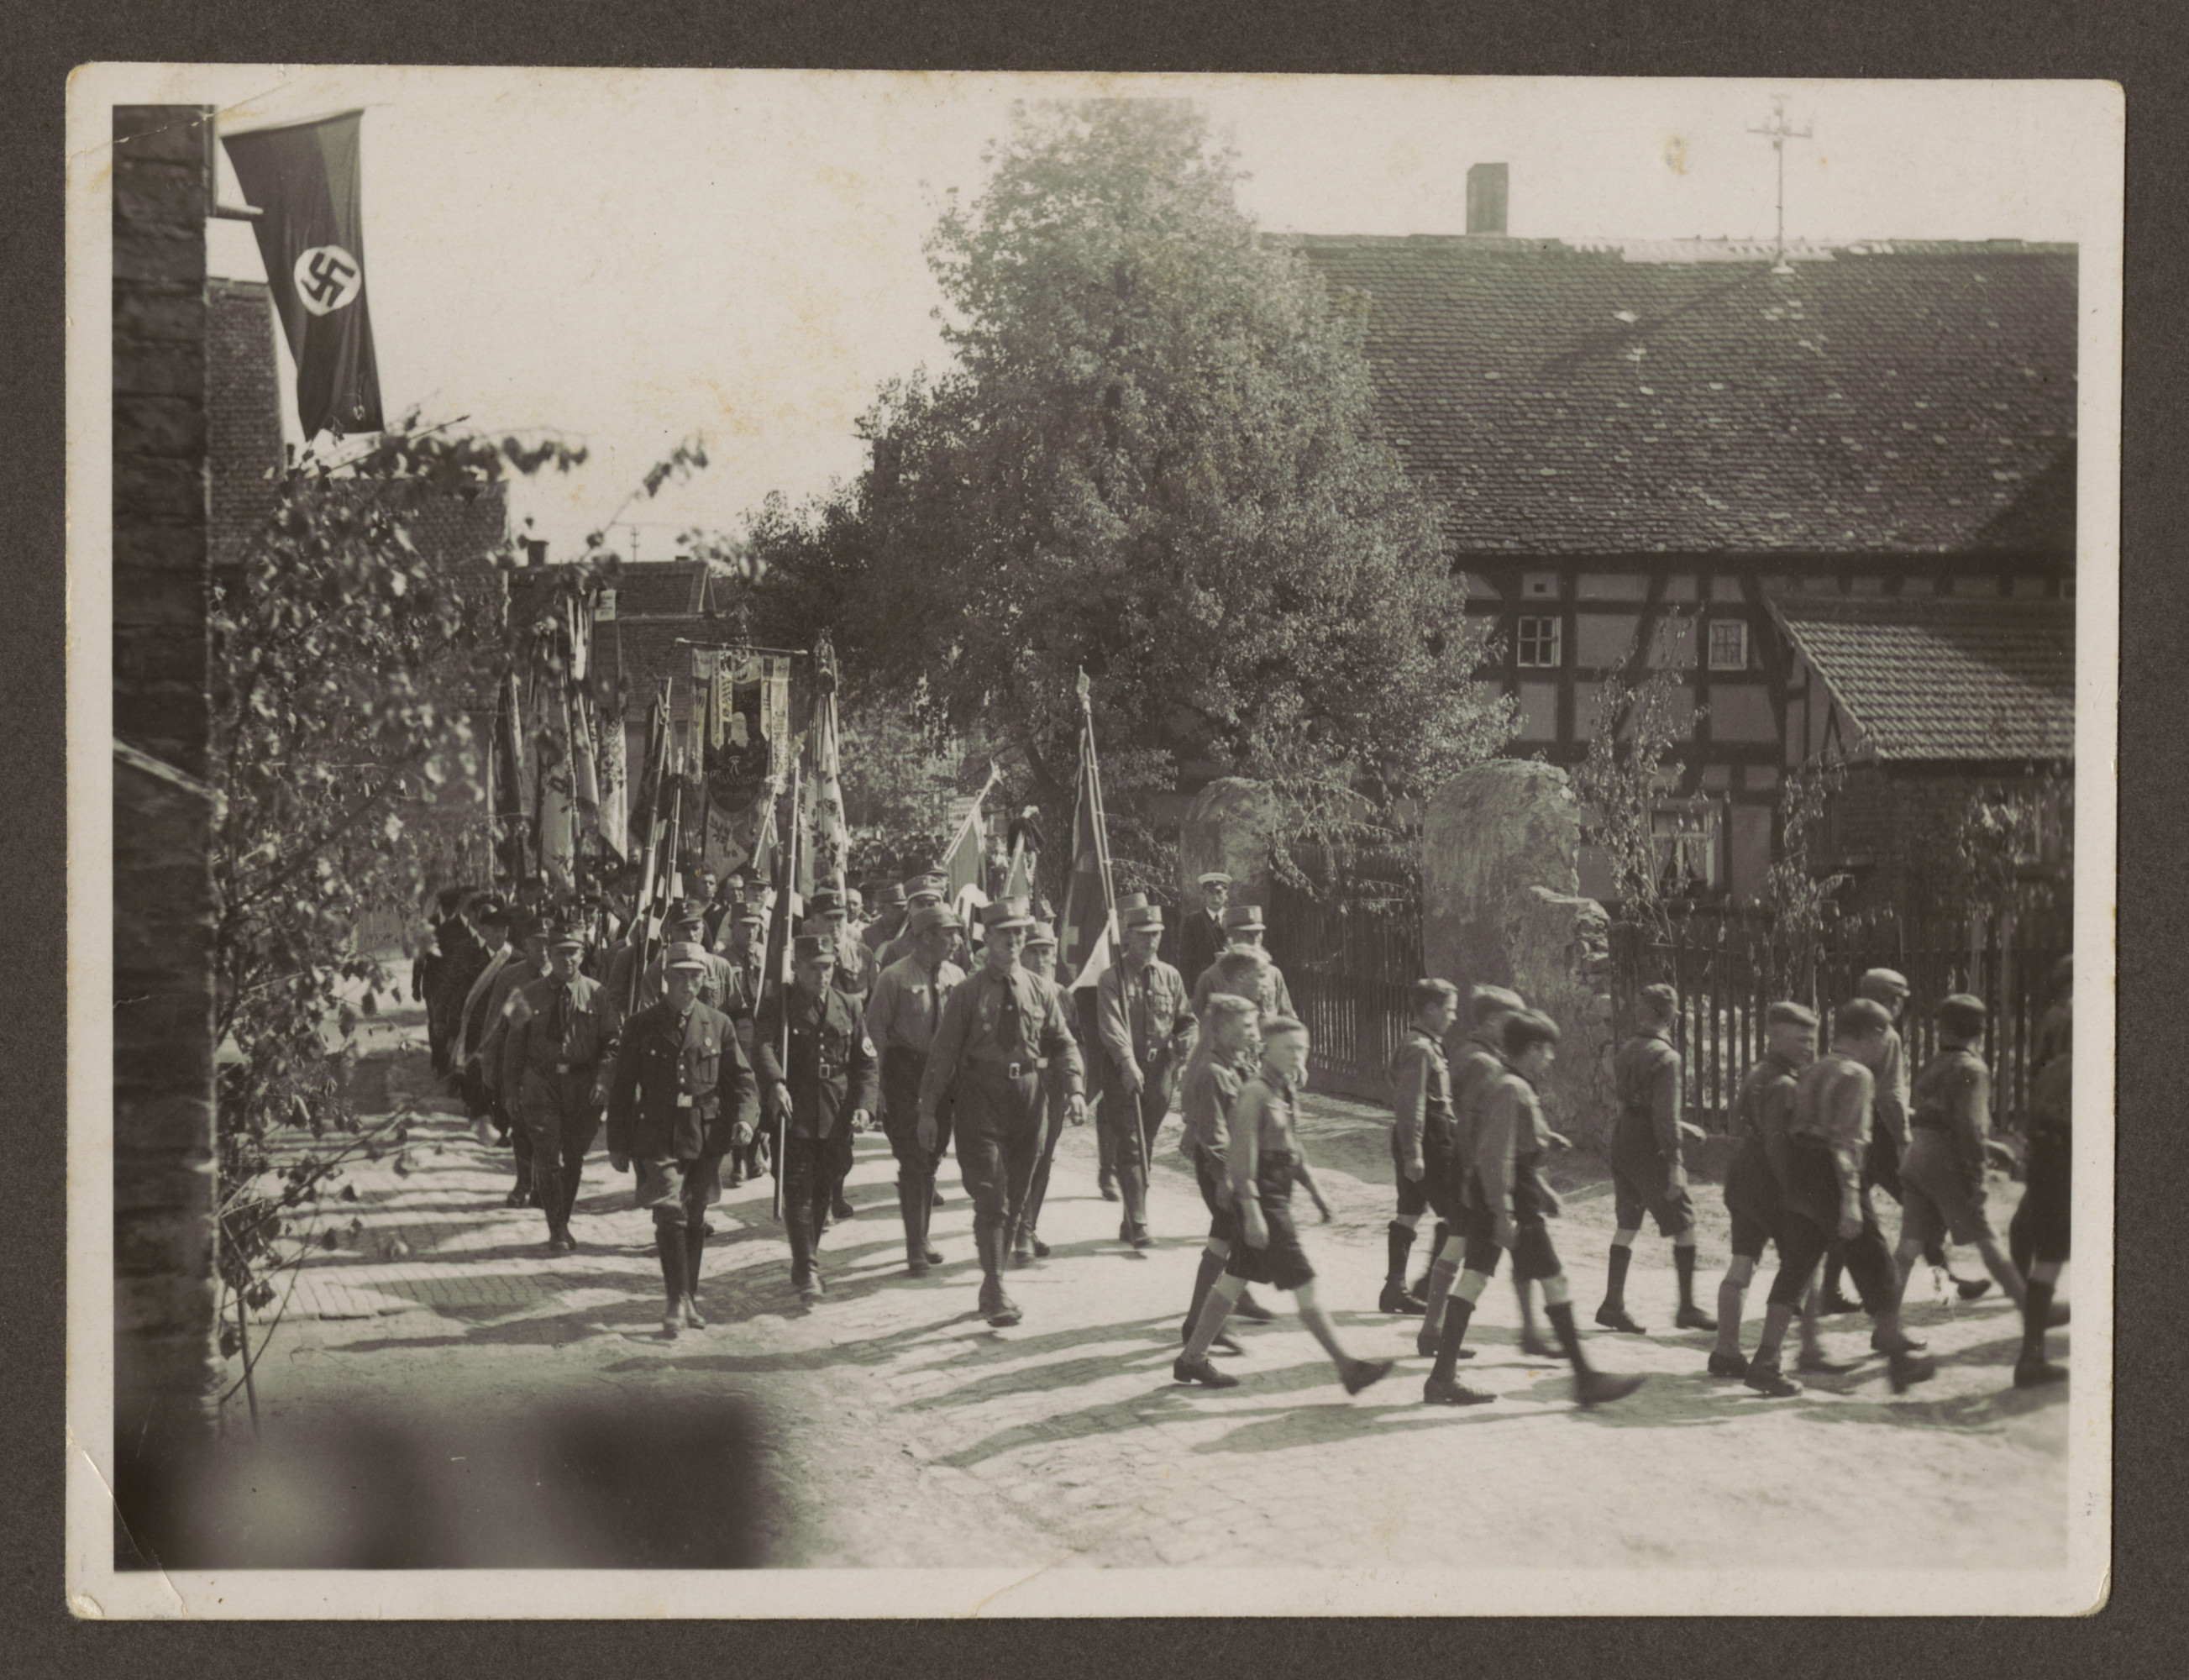 SA members and Hitler Youth march down the street in an unidentified German town.